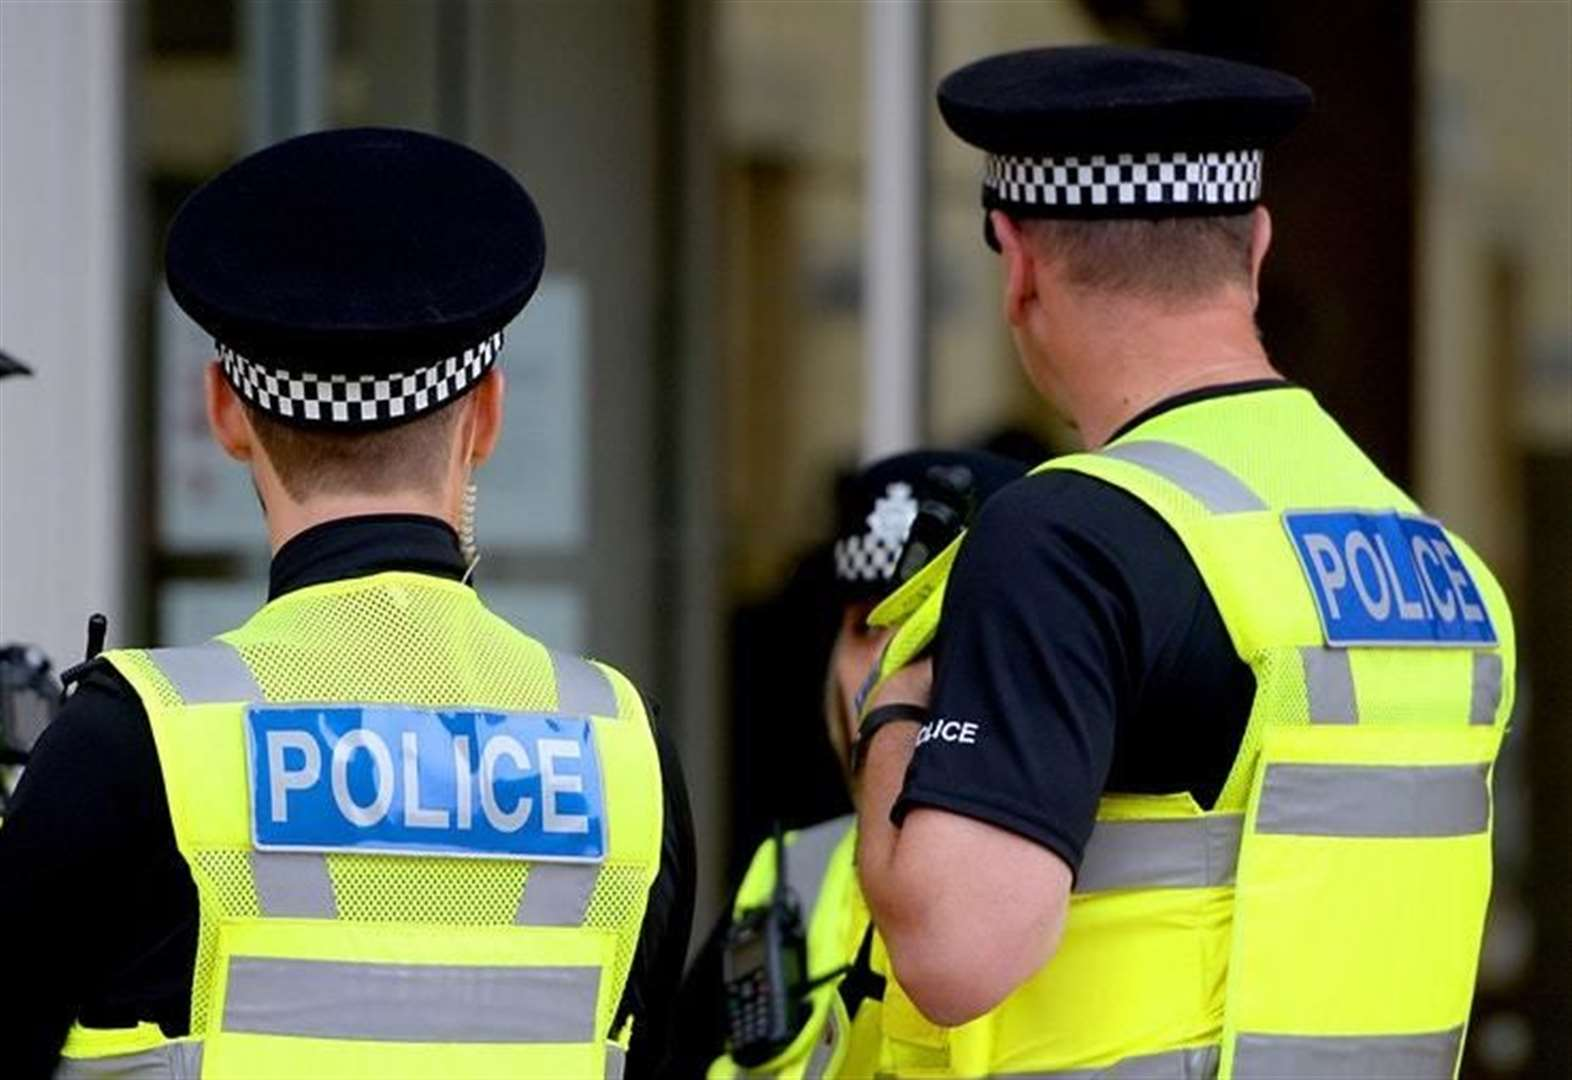 People urged to have a say on policing